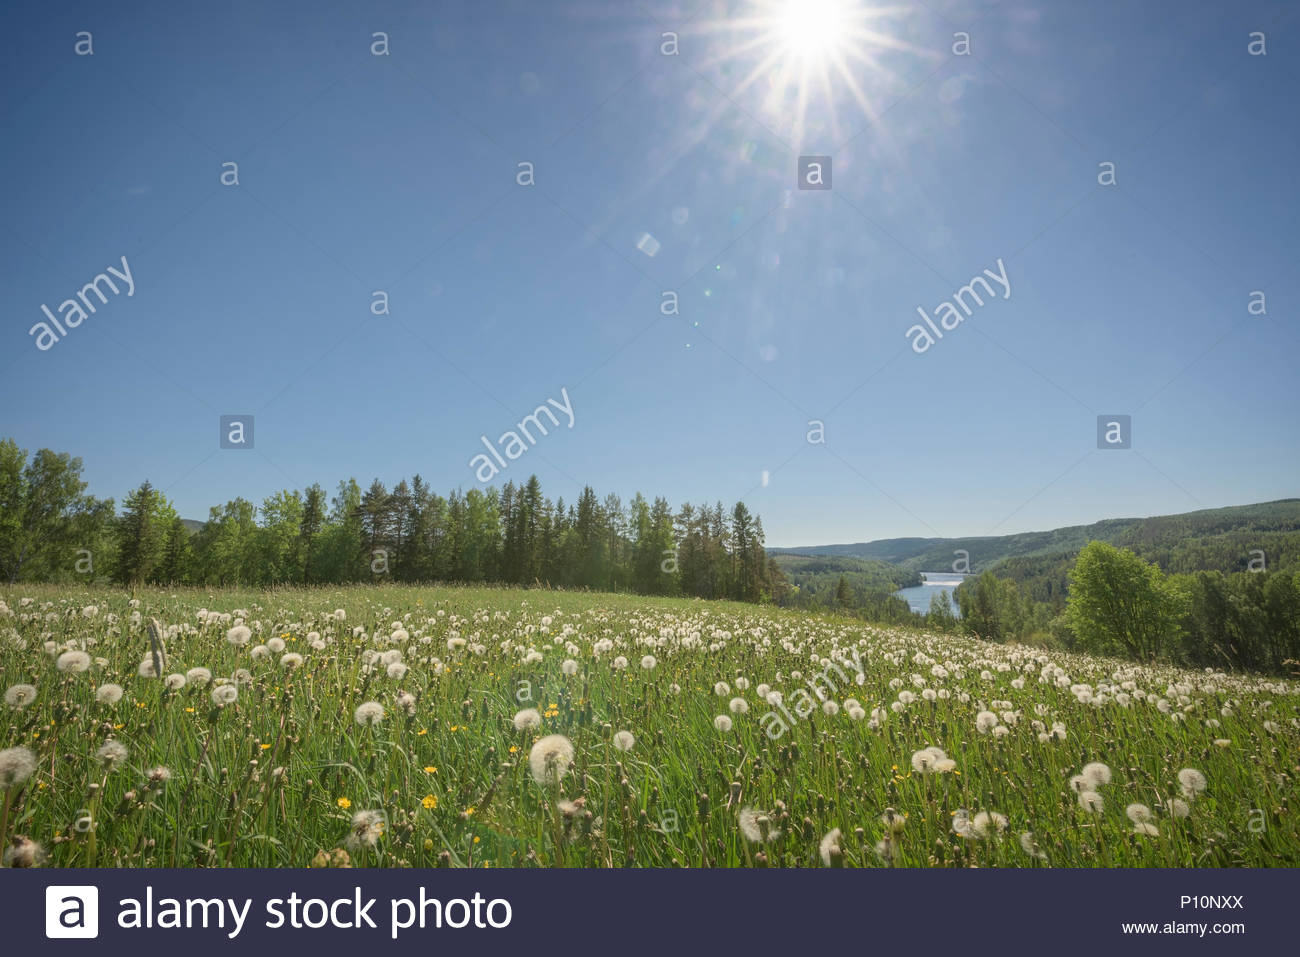 river, dandelion and trees in an mountain landscape - Stock Image